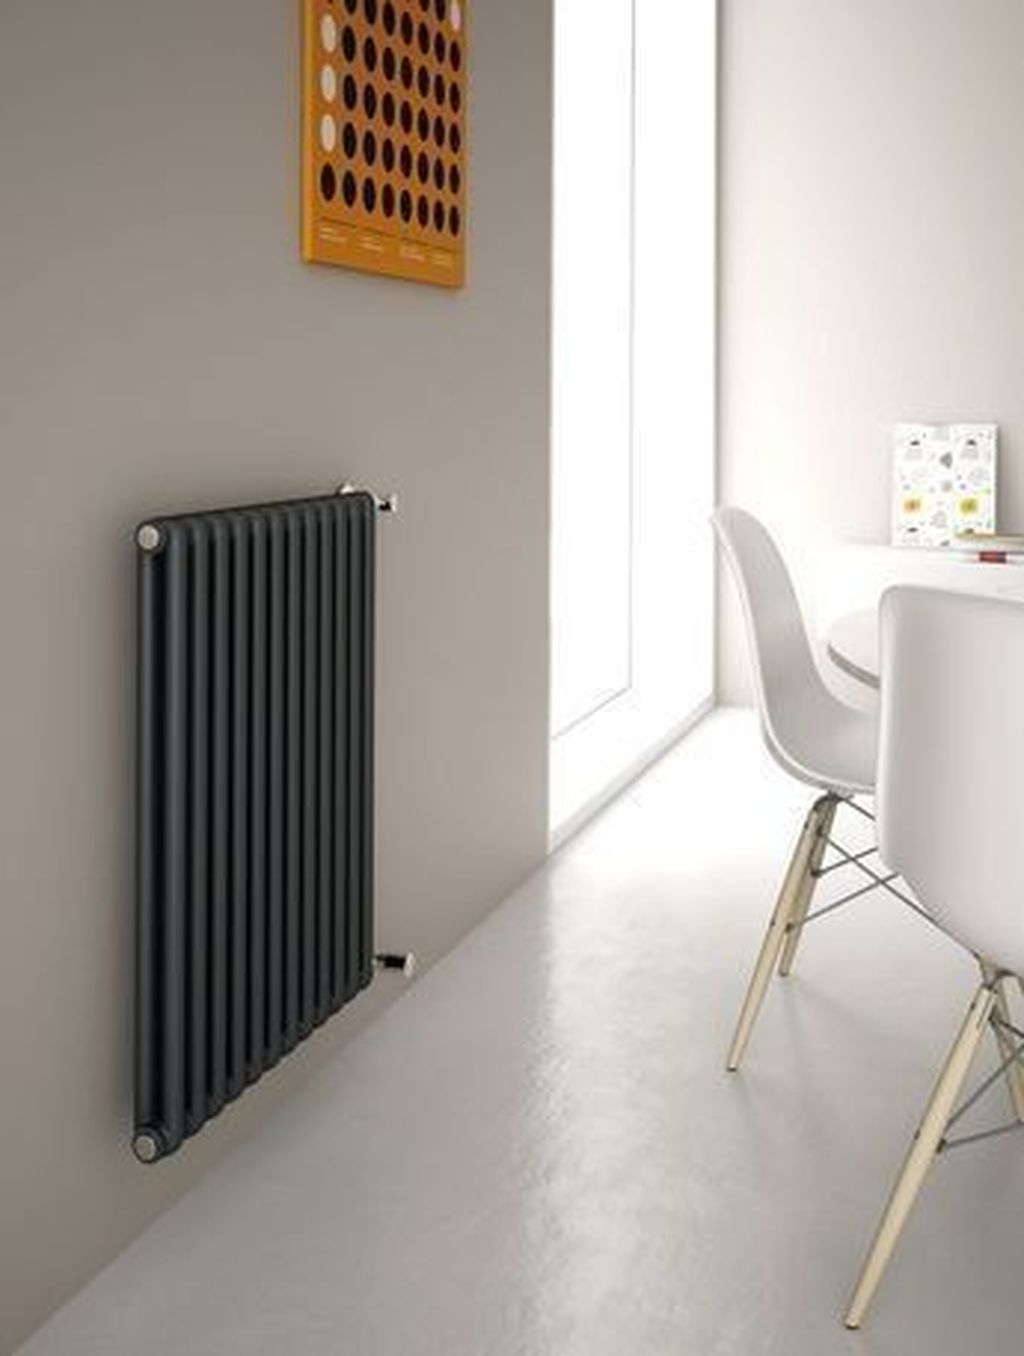 36 Inexpensive Radiators Design Ideas That Will Spruce Up Your Space